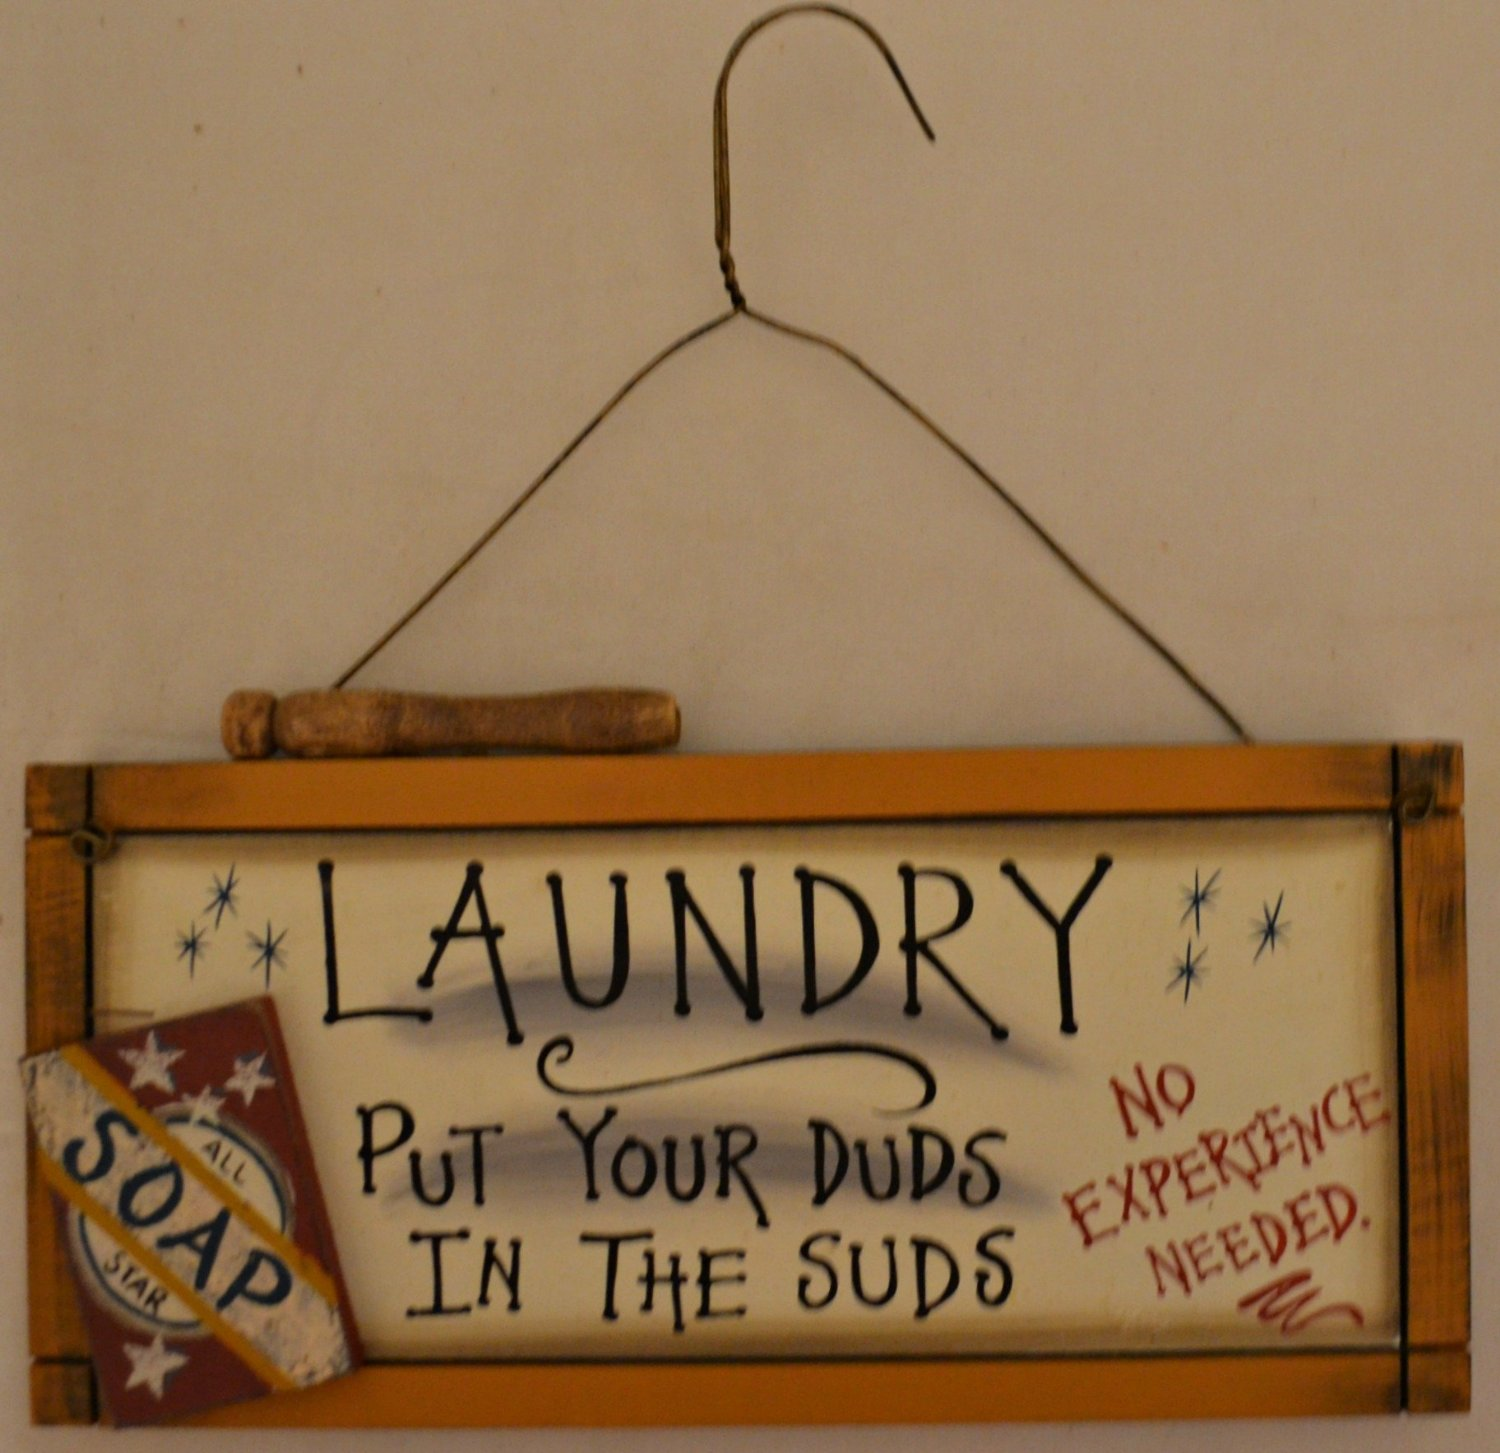 "Rustic Country Wood Plaque Sign Decoration with a Metal Hanger Shaped Wire for Hanging 12 x 6 x 1 Inches. Wooden Sign Saying ""Laundry Put Your Duds In The Suds No Experience Needed"" with Decoration All Star Soap, Clothespin, and Brown Border"